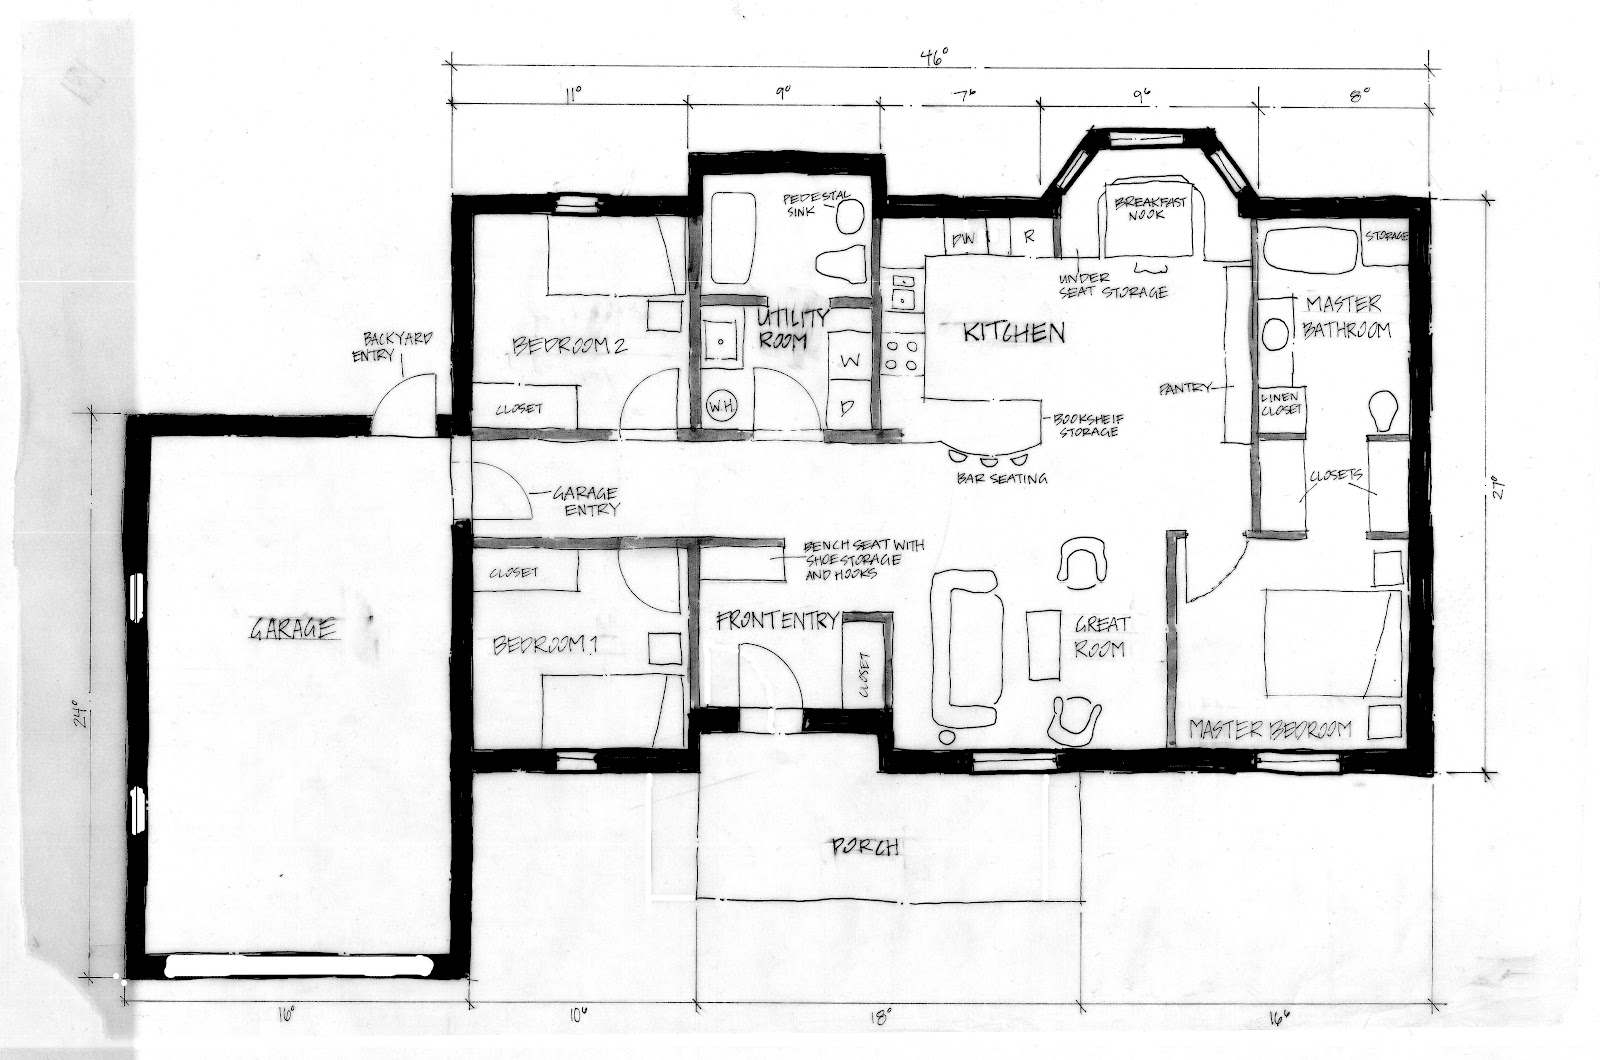 Taylor brock design portfolio habitat for humanity for Aging in place house plans